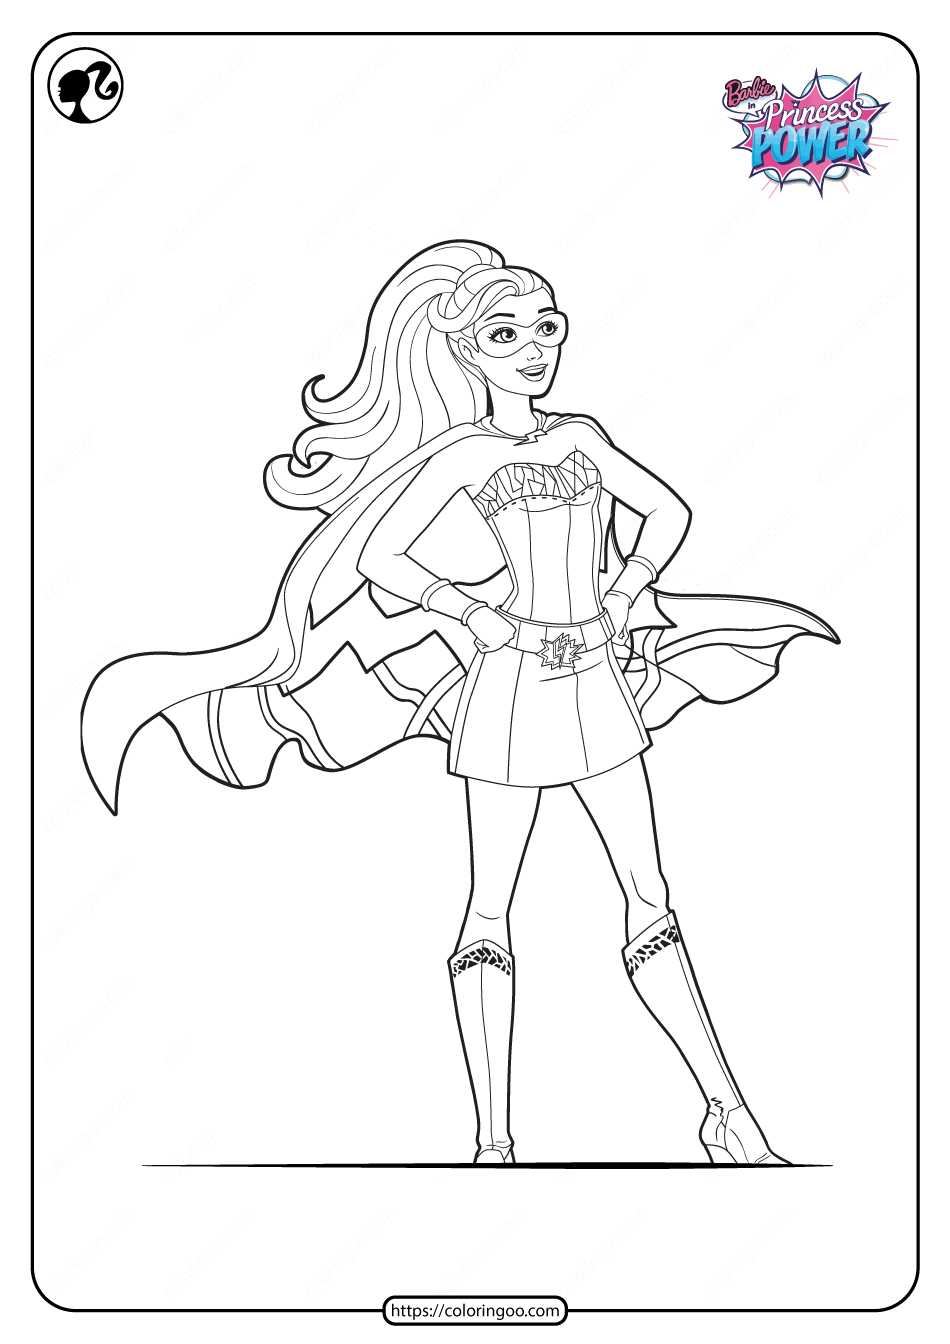 Barbie In Princess Power Coloring Pages Designs Trend